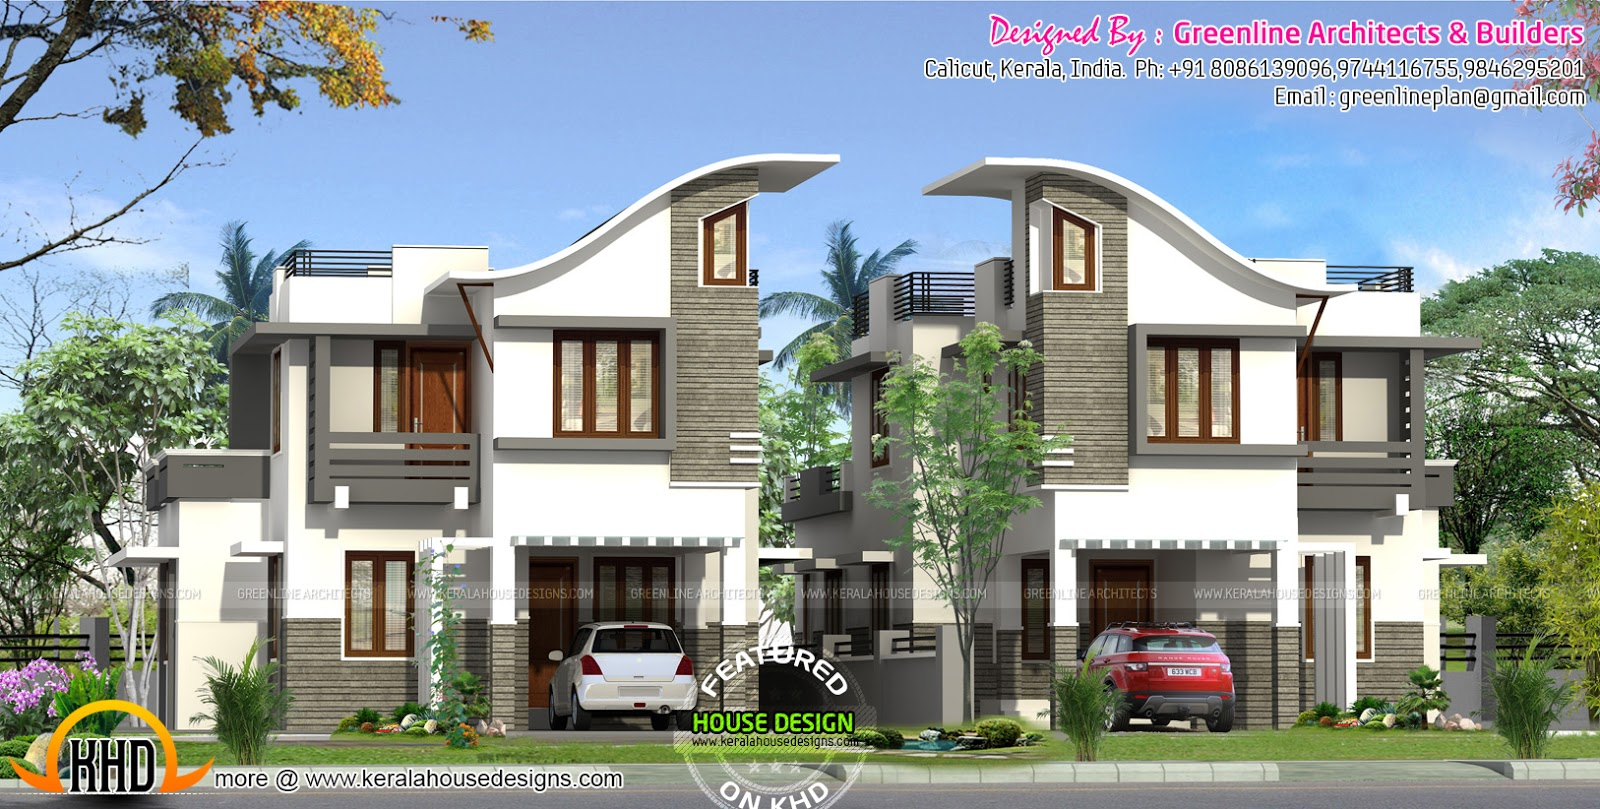 nigeria mansions house design html with Twin House Design on 53e1a1440c75c3e2 8 Bedroom Ranch House Plans 7 Bedroom House Floor Plans likewise Housing Will Help Jump Start Economy Afolayan furthermore Beautiful 4bhk House Design furthermore See Inside Dj Zinhles House as well 2012 12 01 archive.